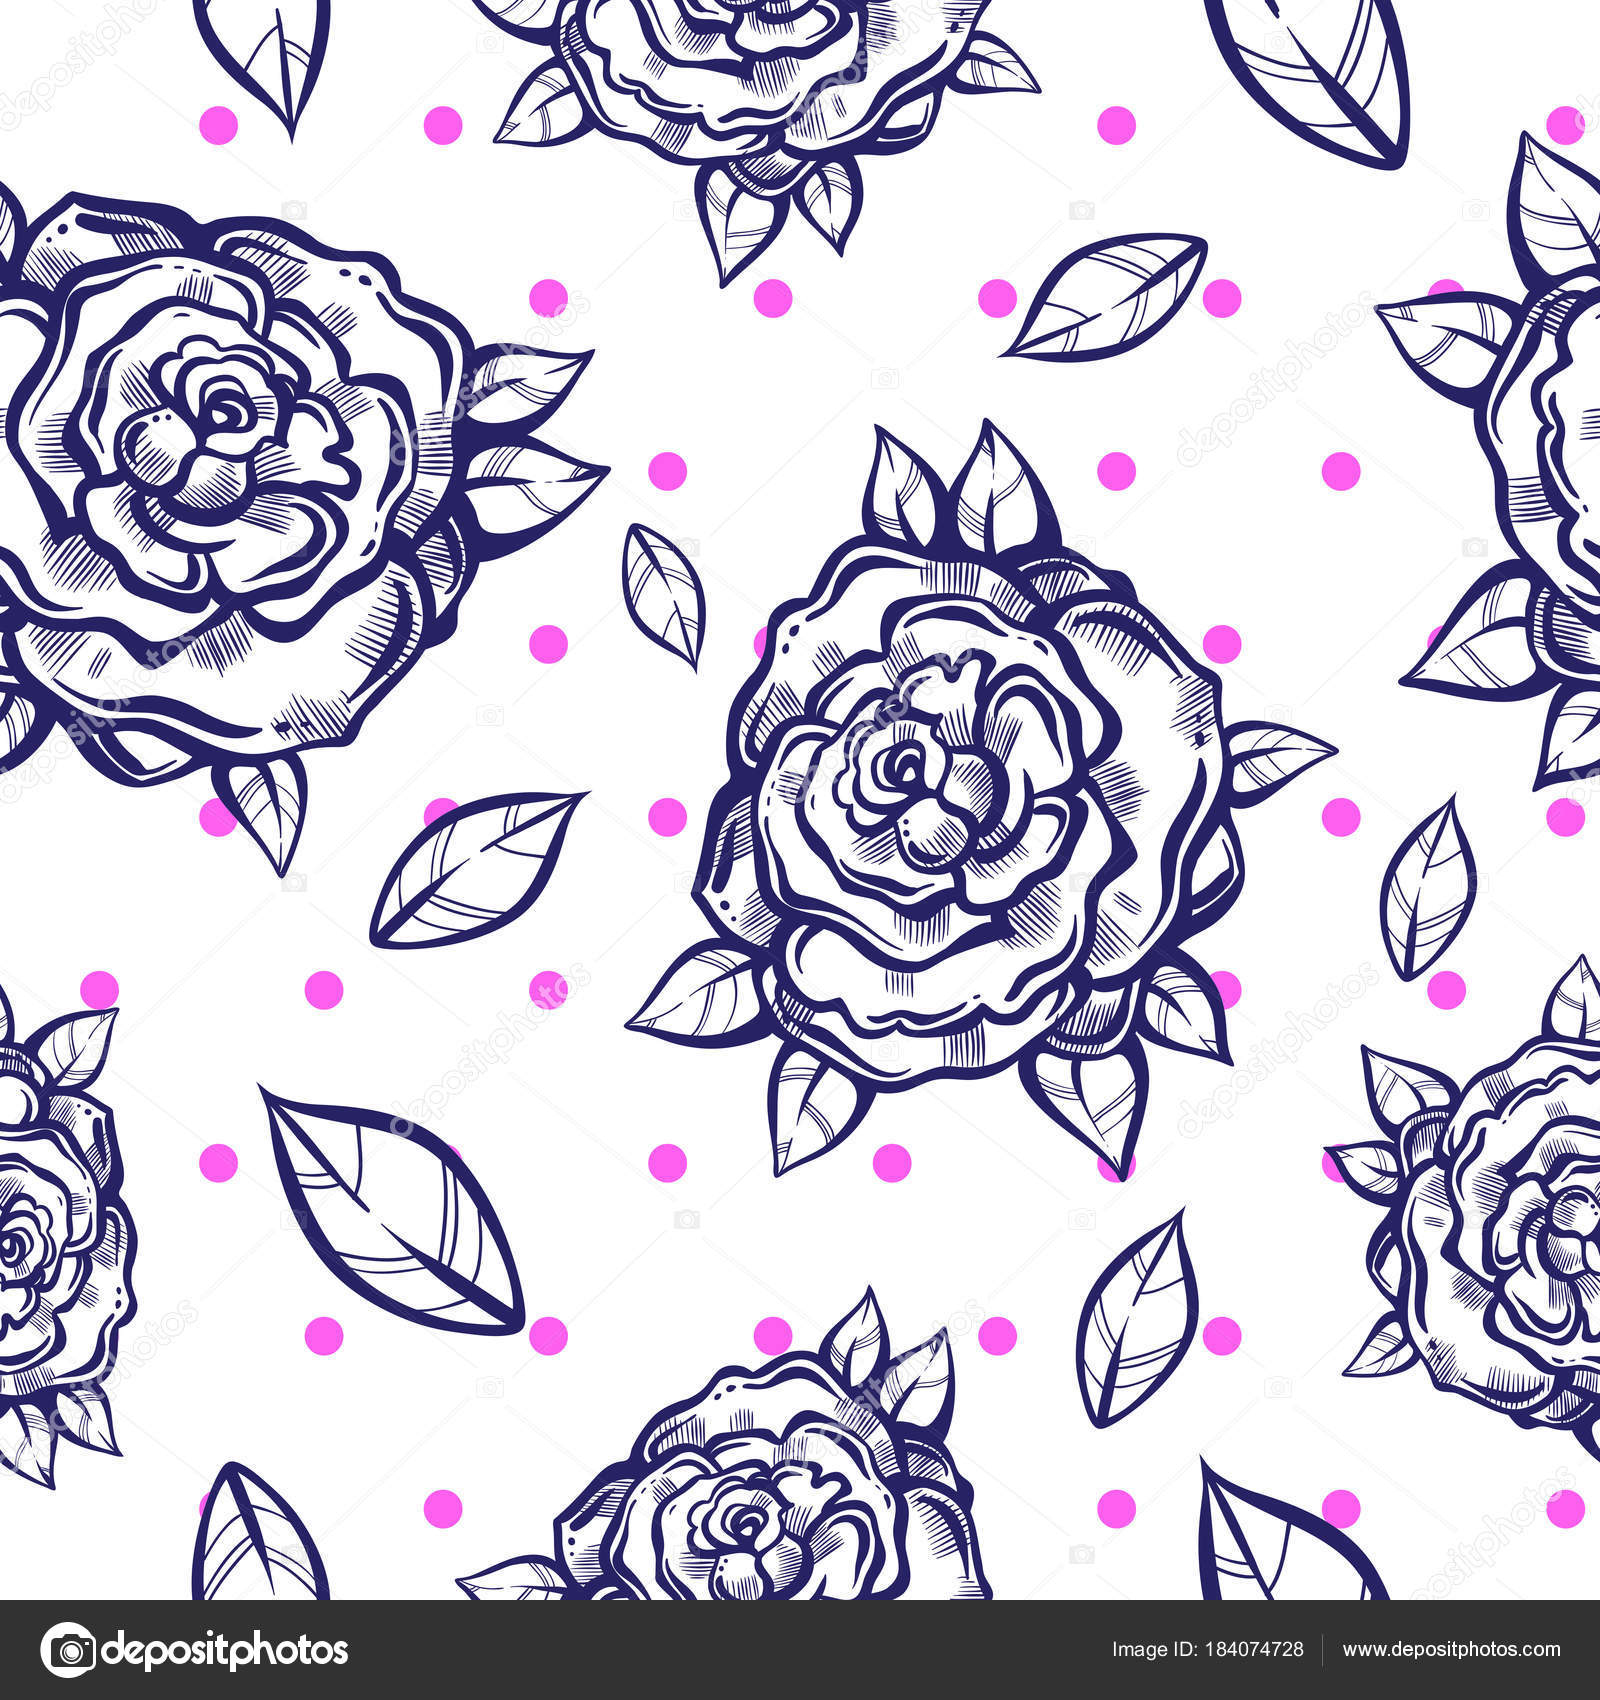 Beautiful Vintage Seamless Pattern With Gothic Roses In Linear Style Black And White Retro Illustration